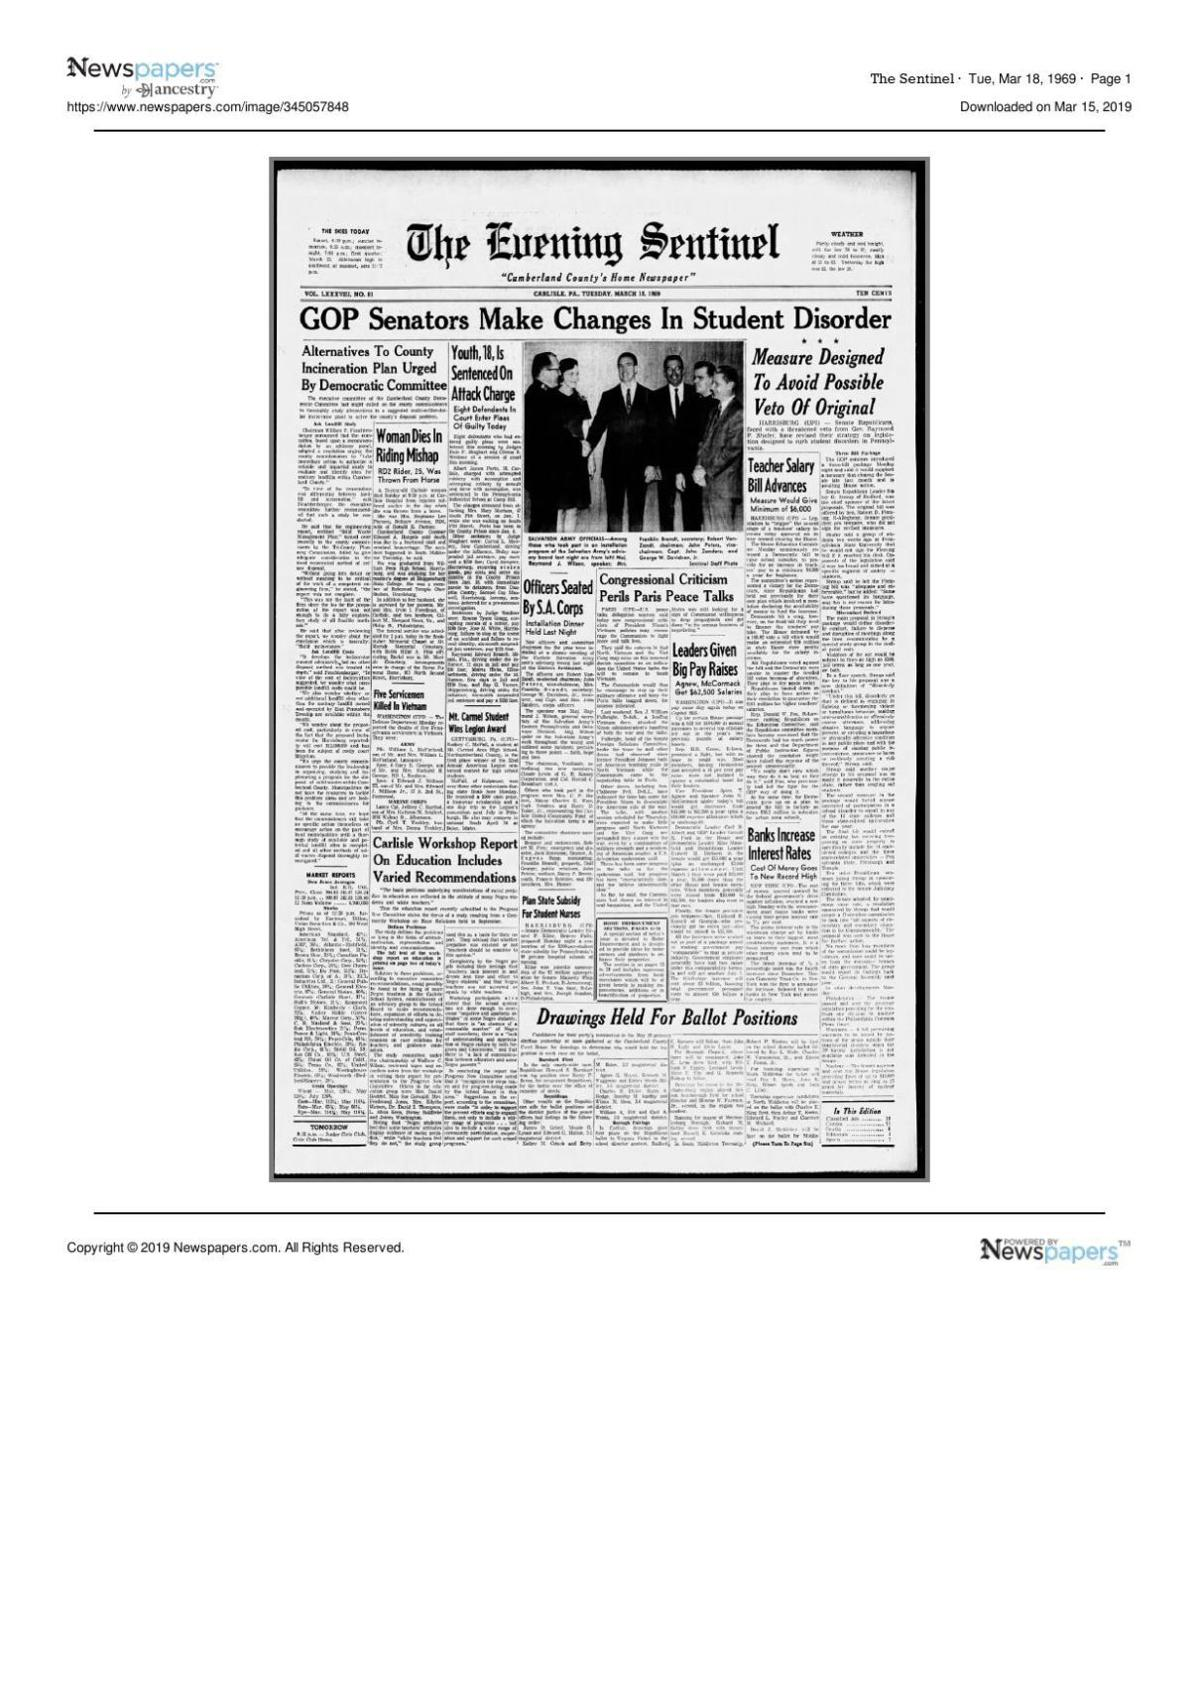 The Sentinel for March 18, 1969 page one | | cumberlink com